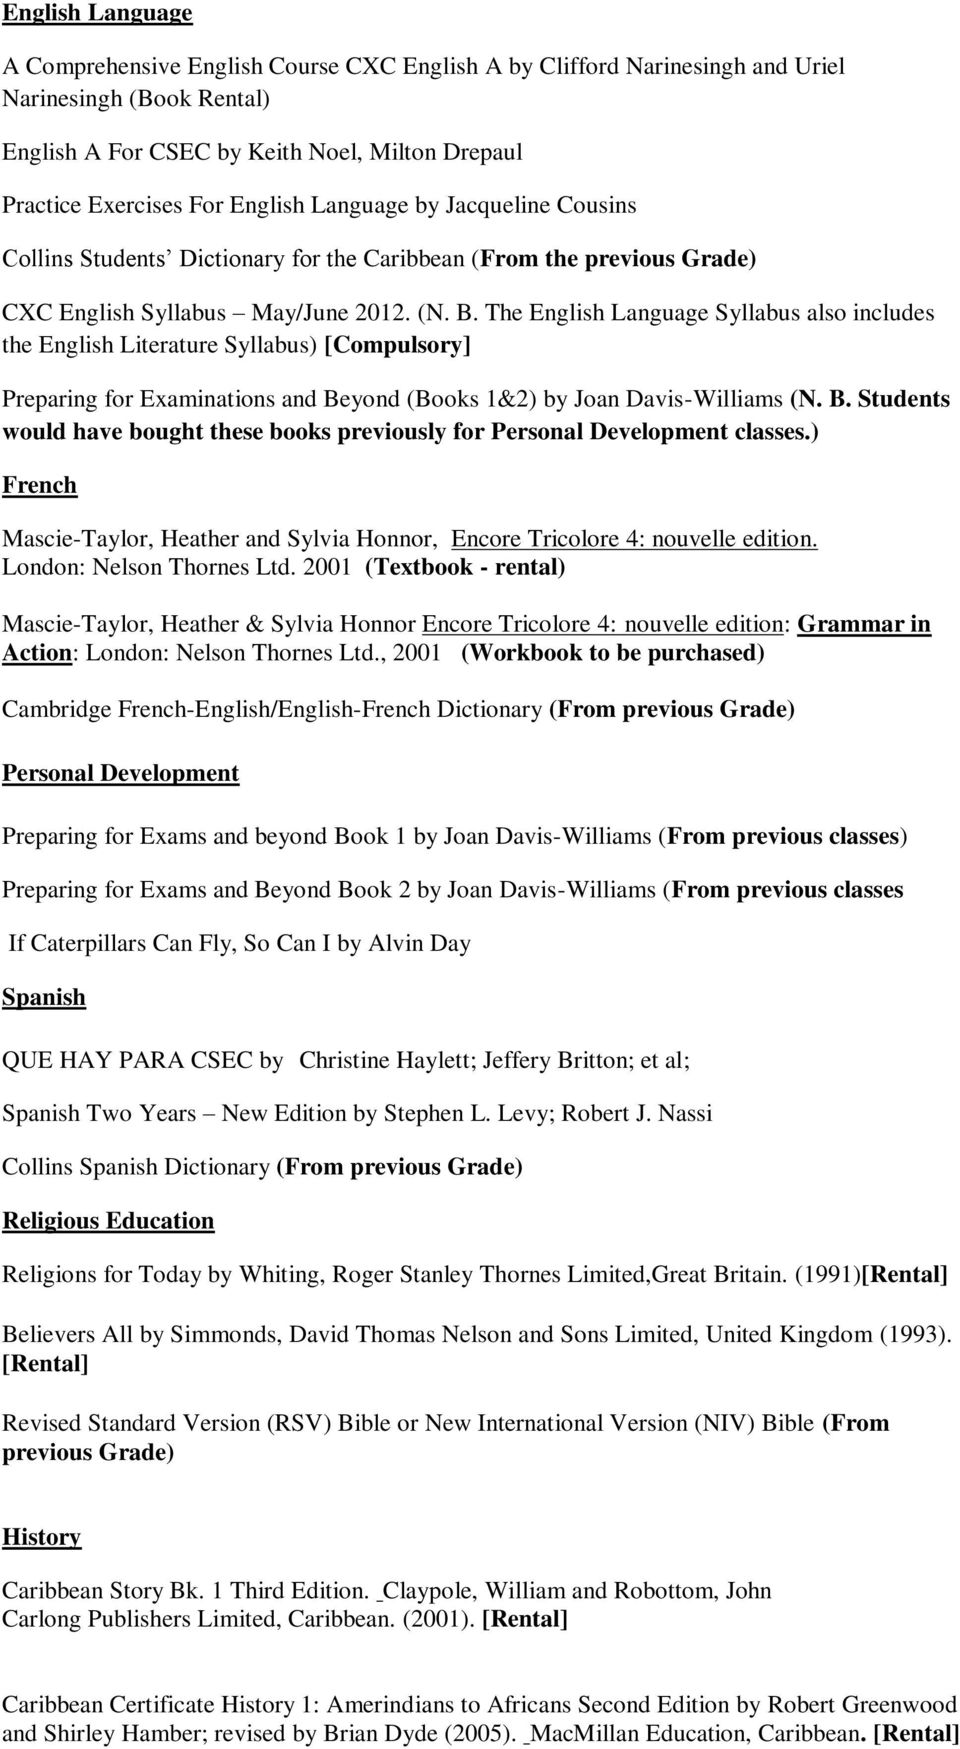 Ardenne high school grade 10 booklist pdf the english language syllabus also includes the english literature syllabus compulsory preparing for fandeluxe Choice Image